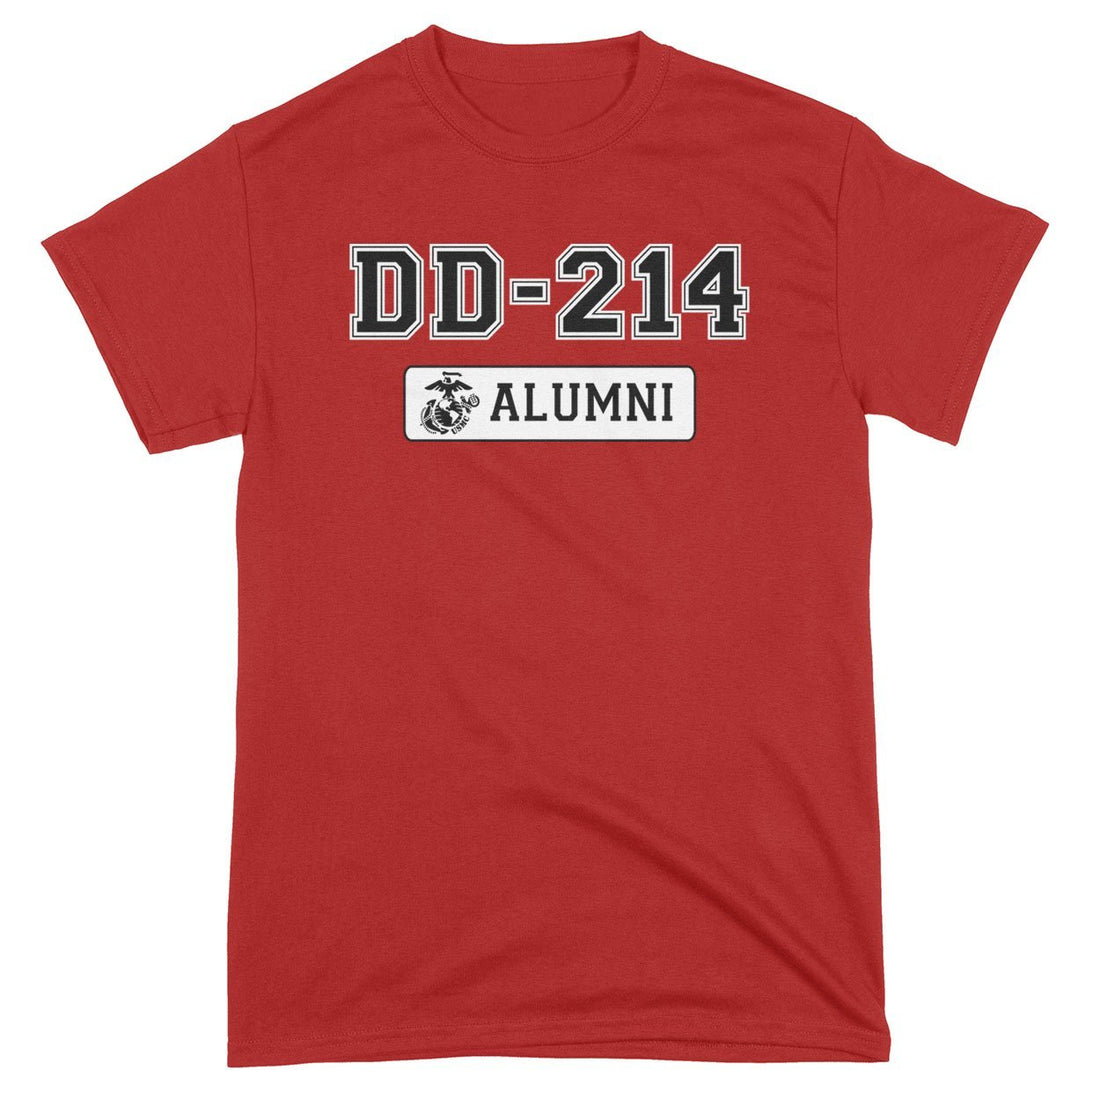 DD-214 Alumni T-Shirt - Marine Corps Direct